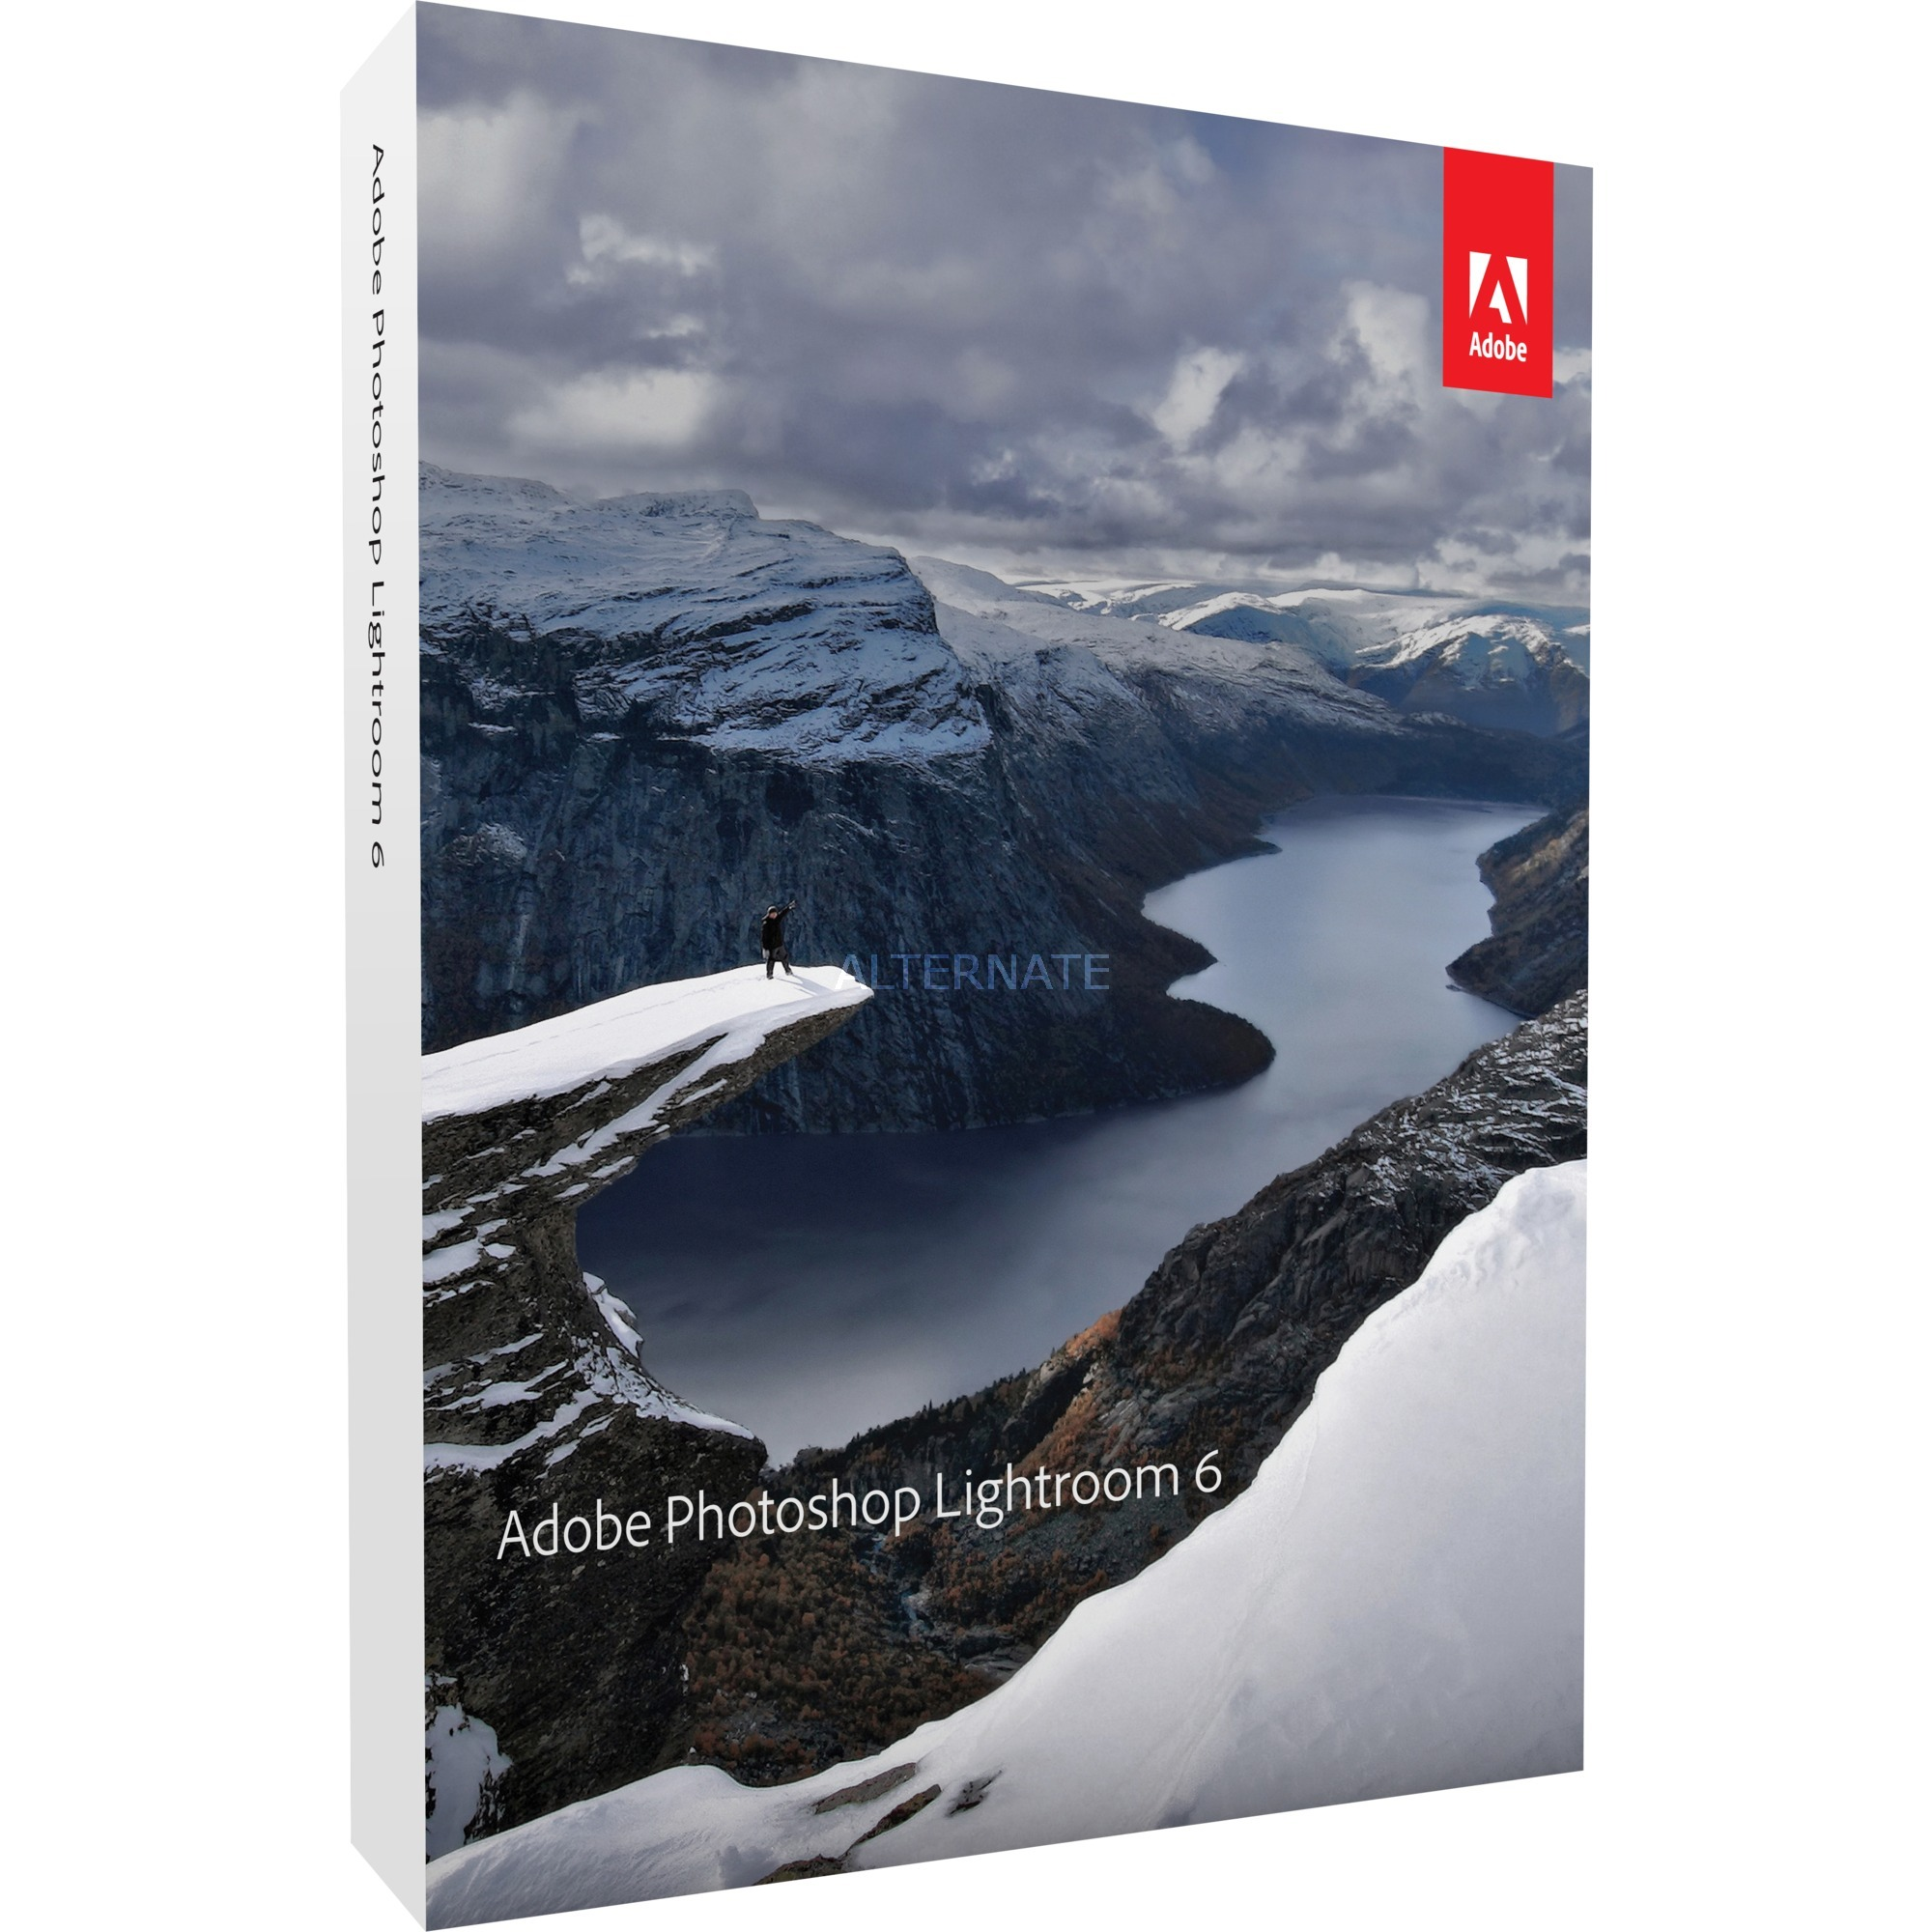 Photoshop Lightroom 6, Software